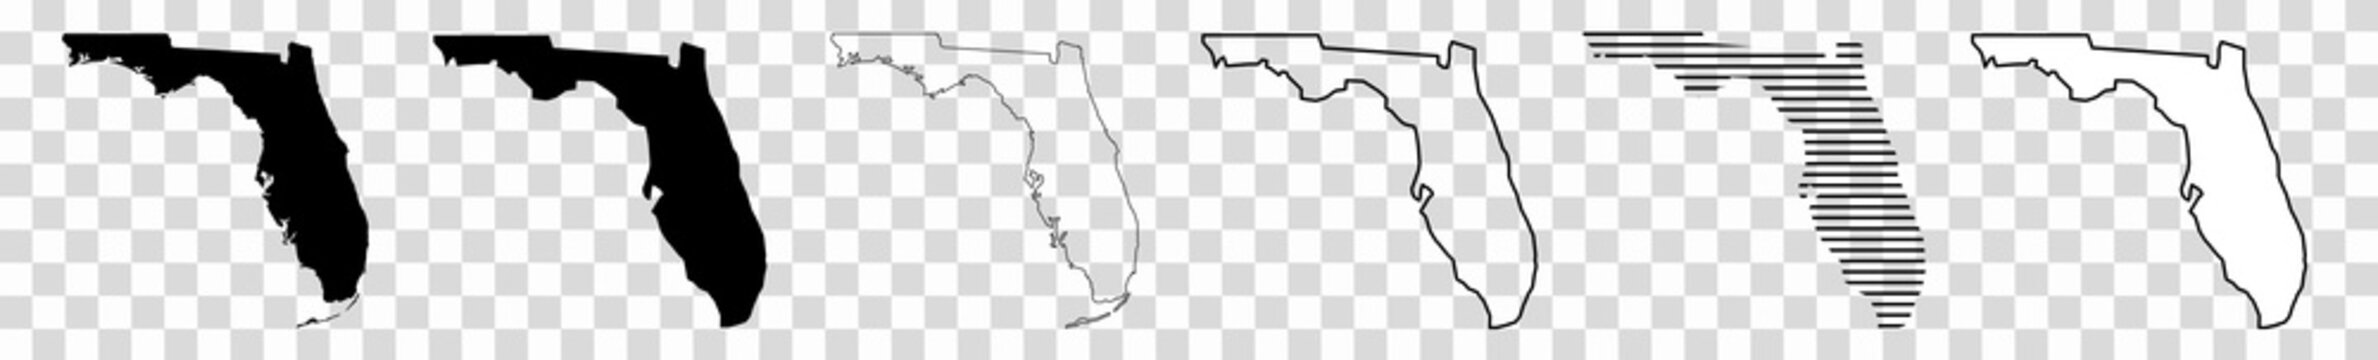 Florida Map Black | State Border | United States | US America | Transparent Isolated | Variations